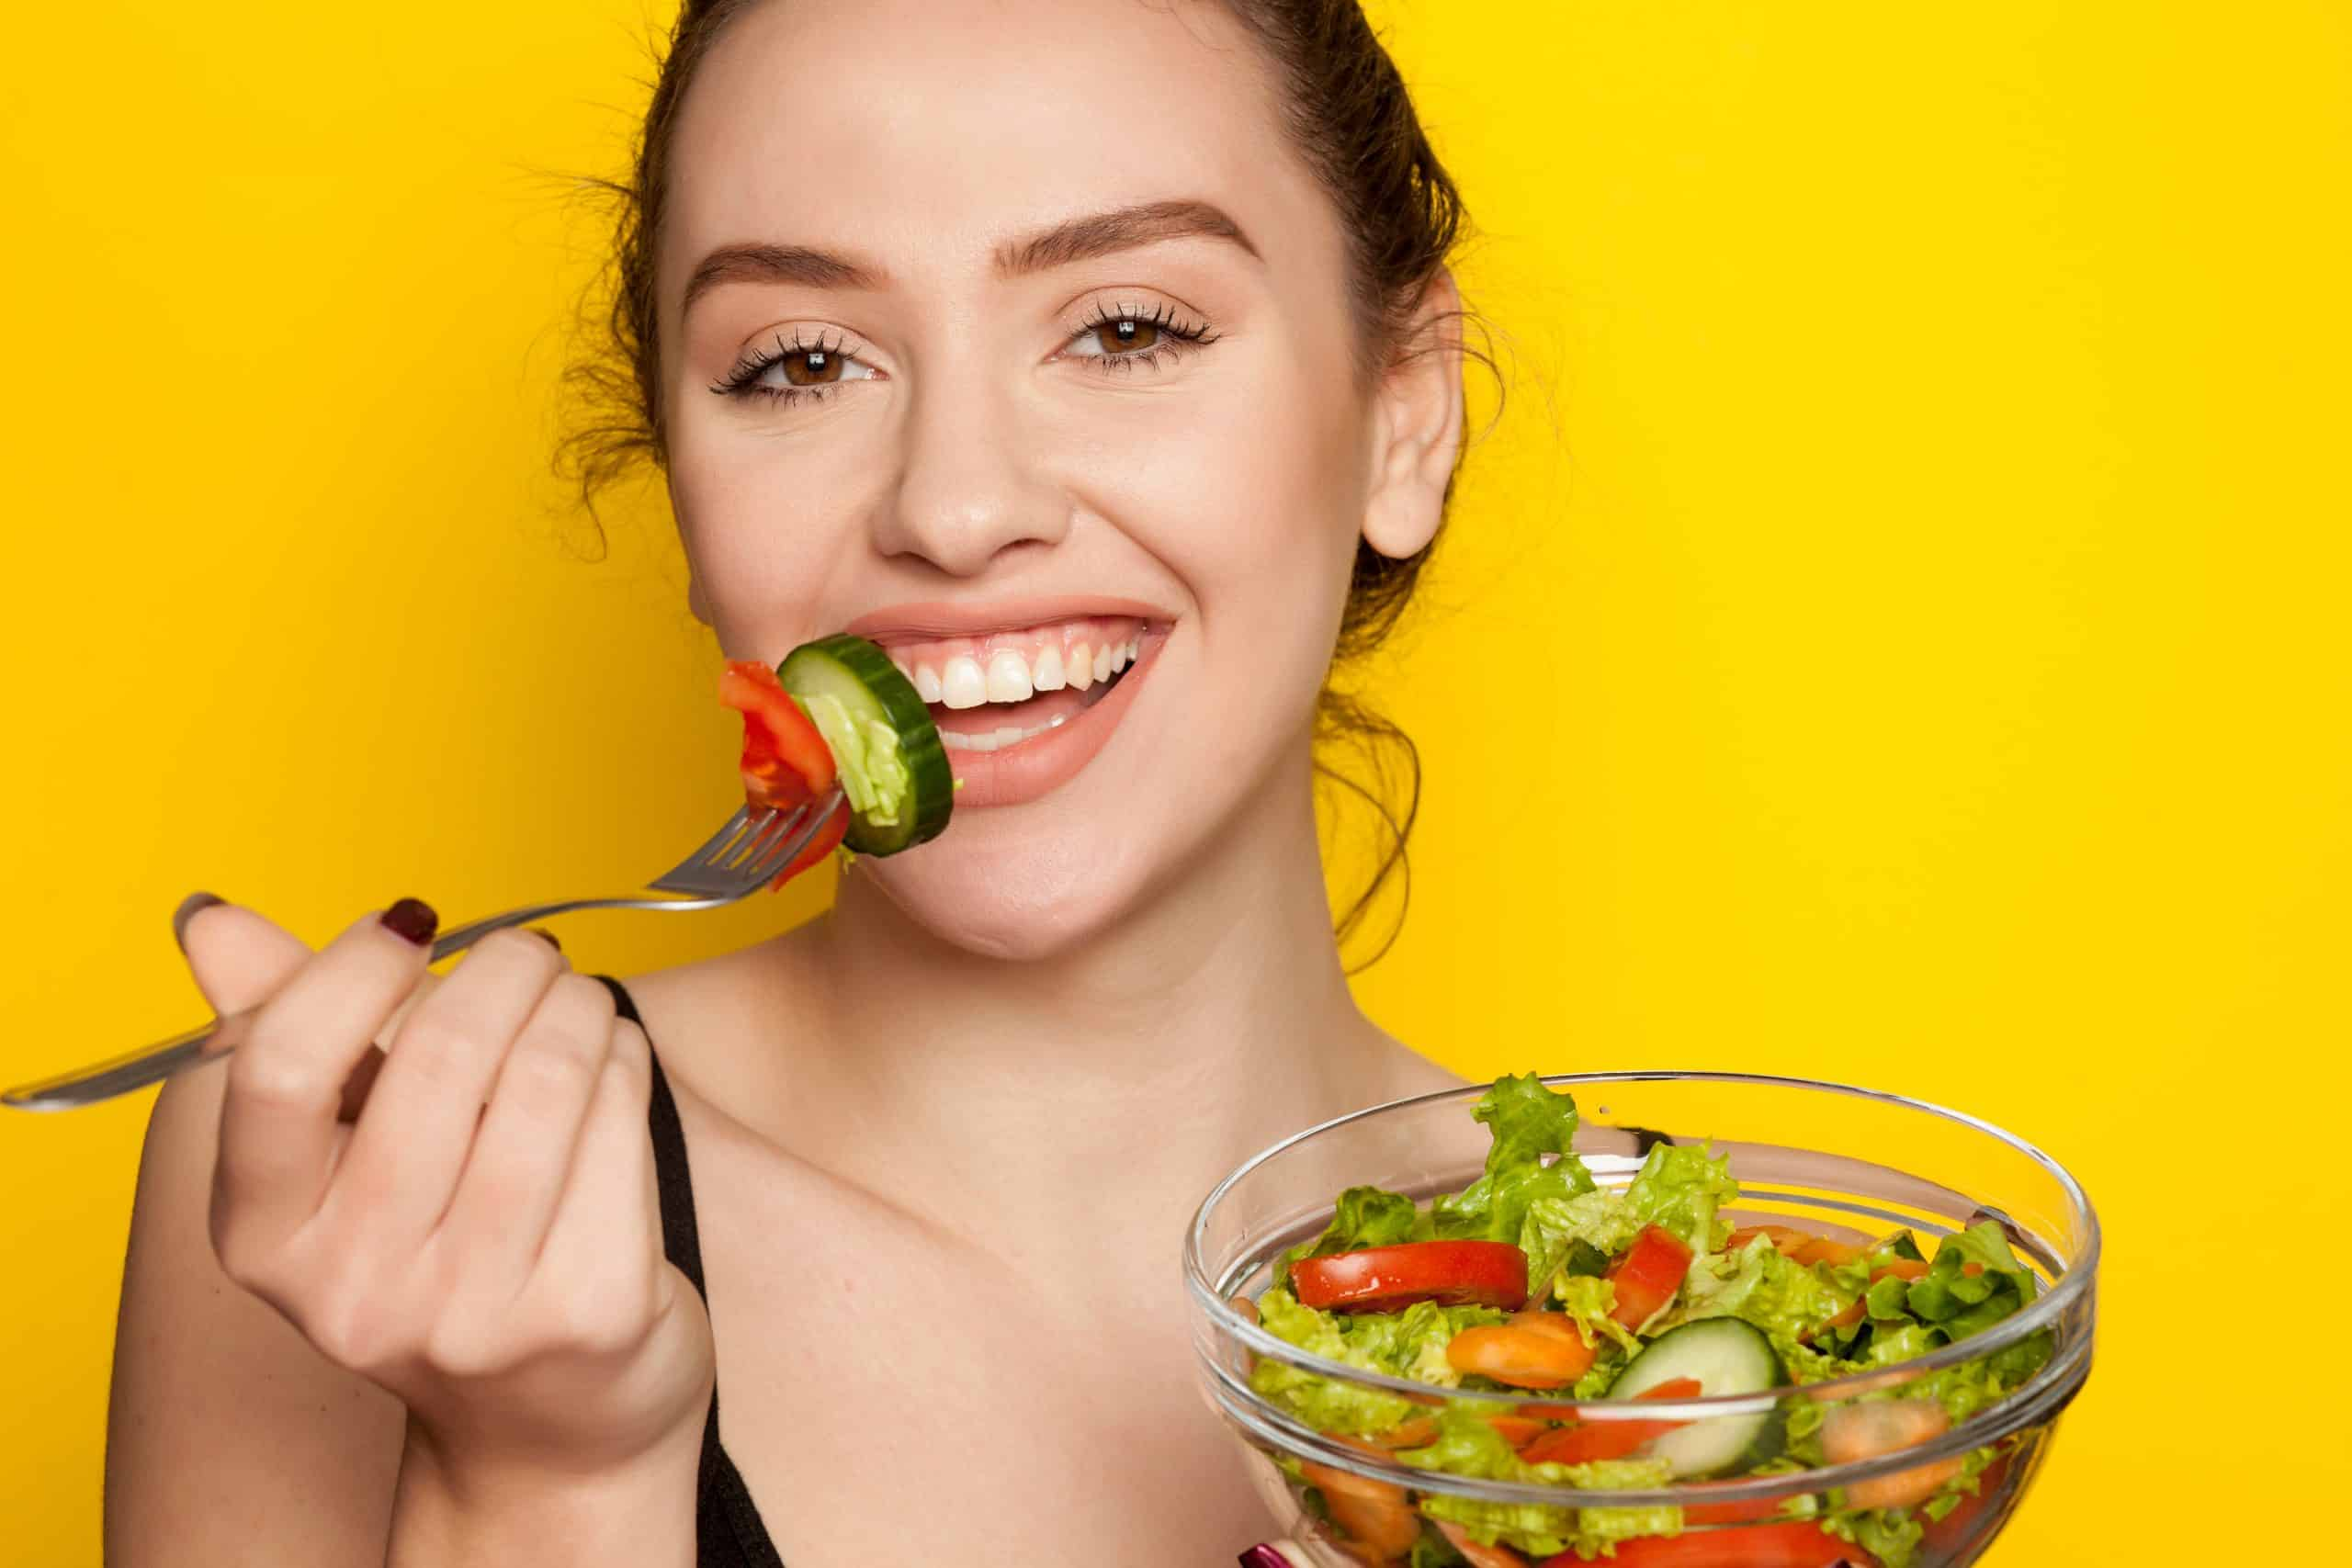 What to do to lose weight in 60 days